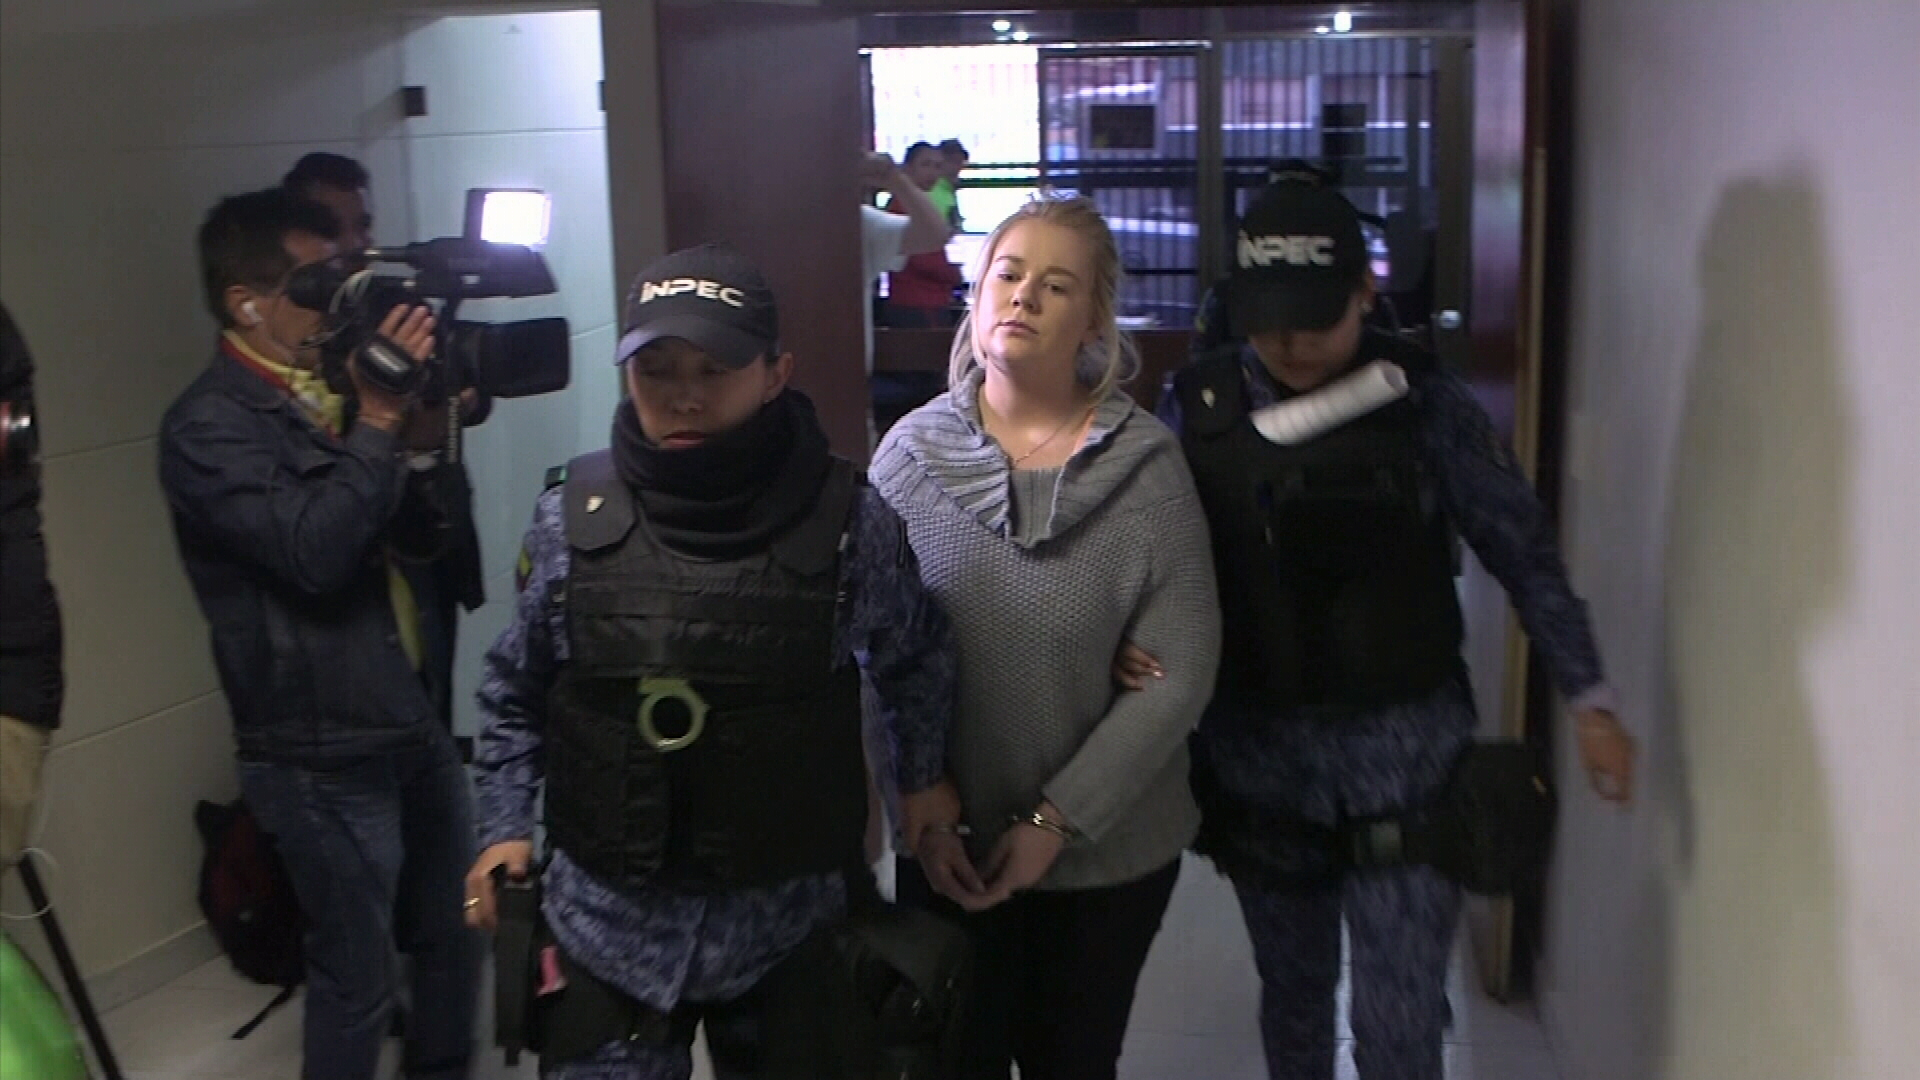 NEWS: Cassie Sainsbury may have case put on hold